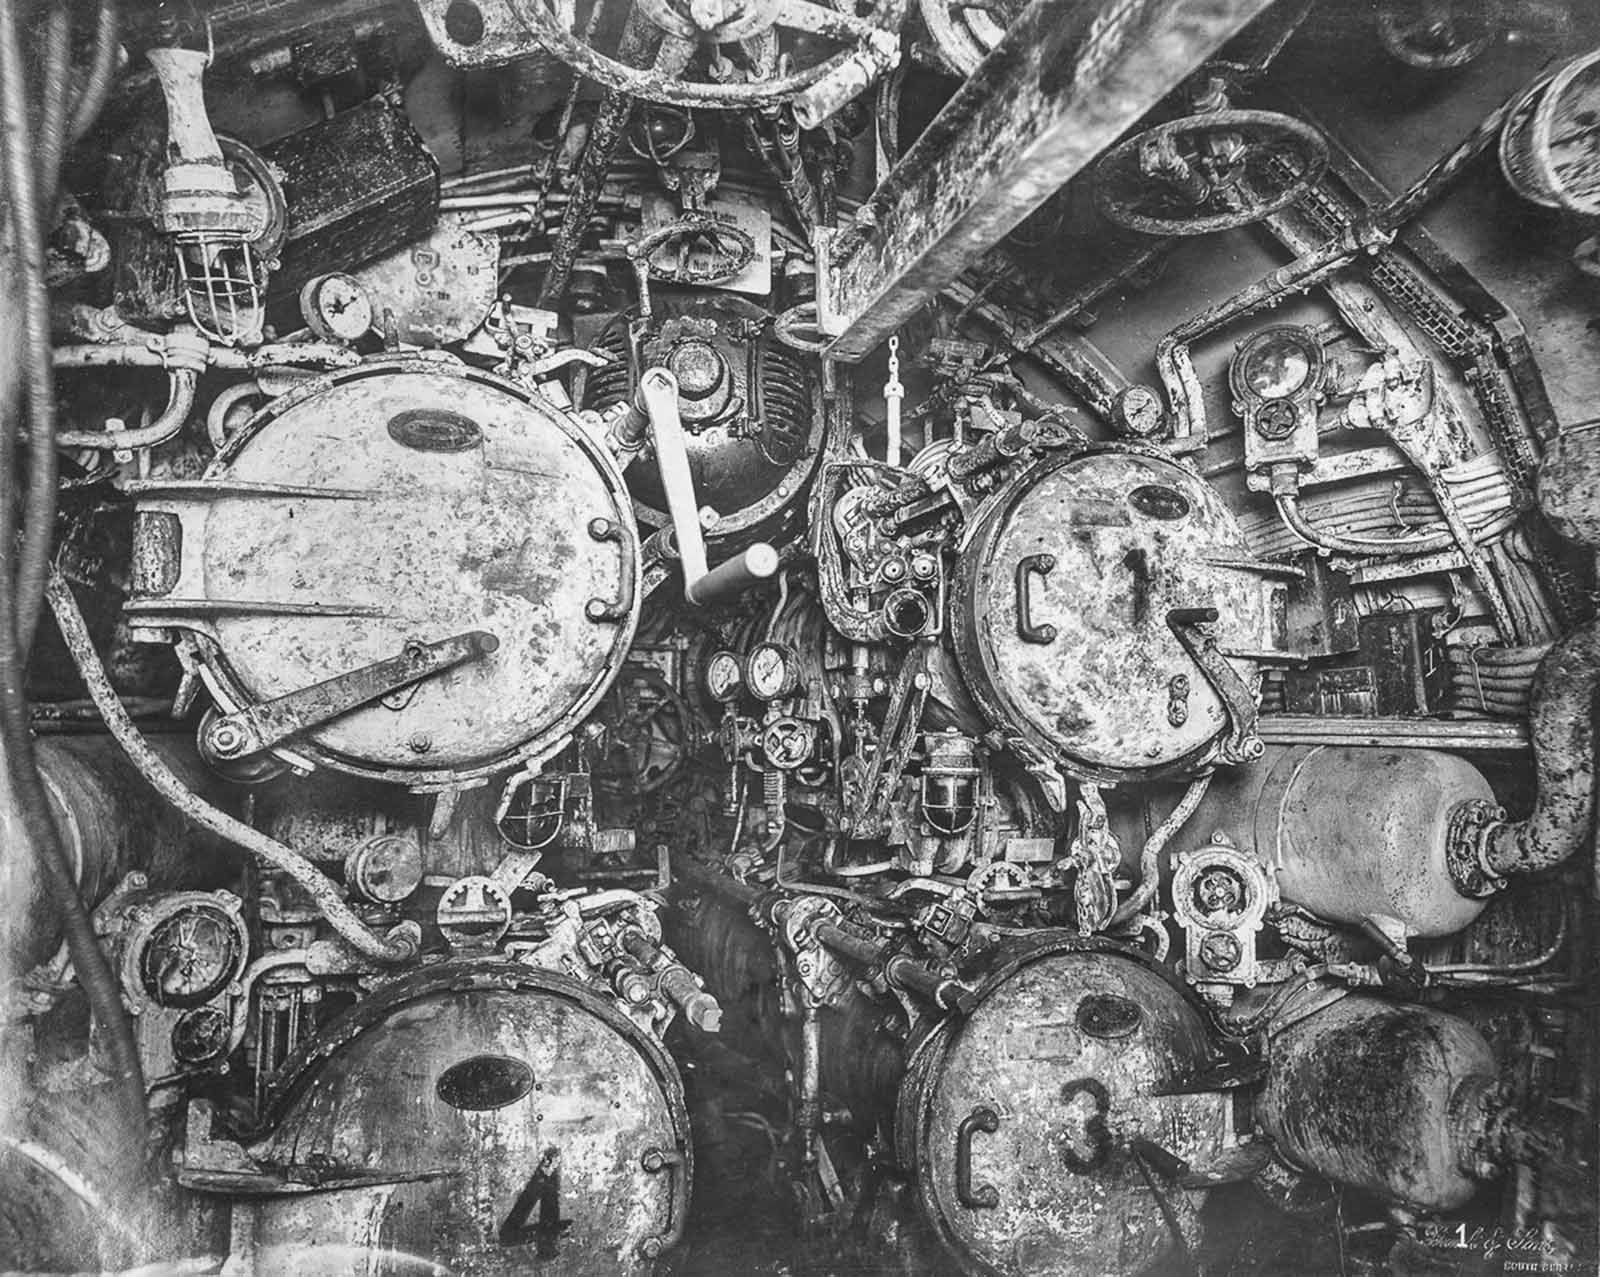 The four torpedo tubes of U-boat 110.